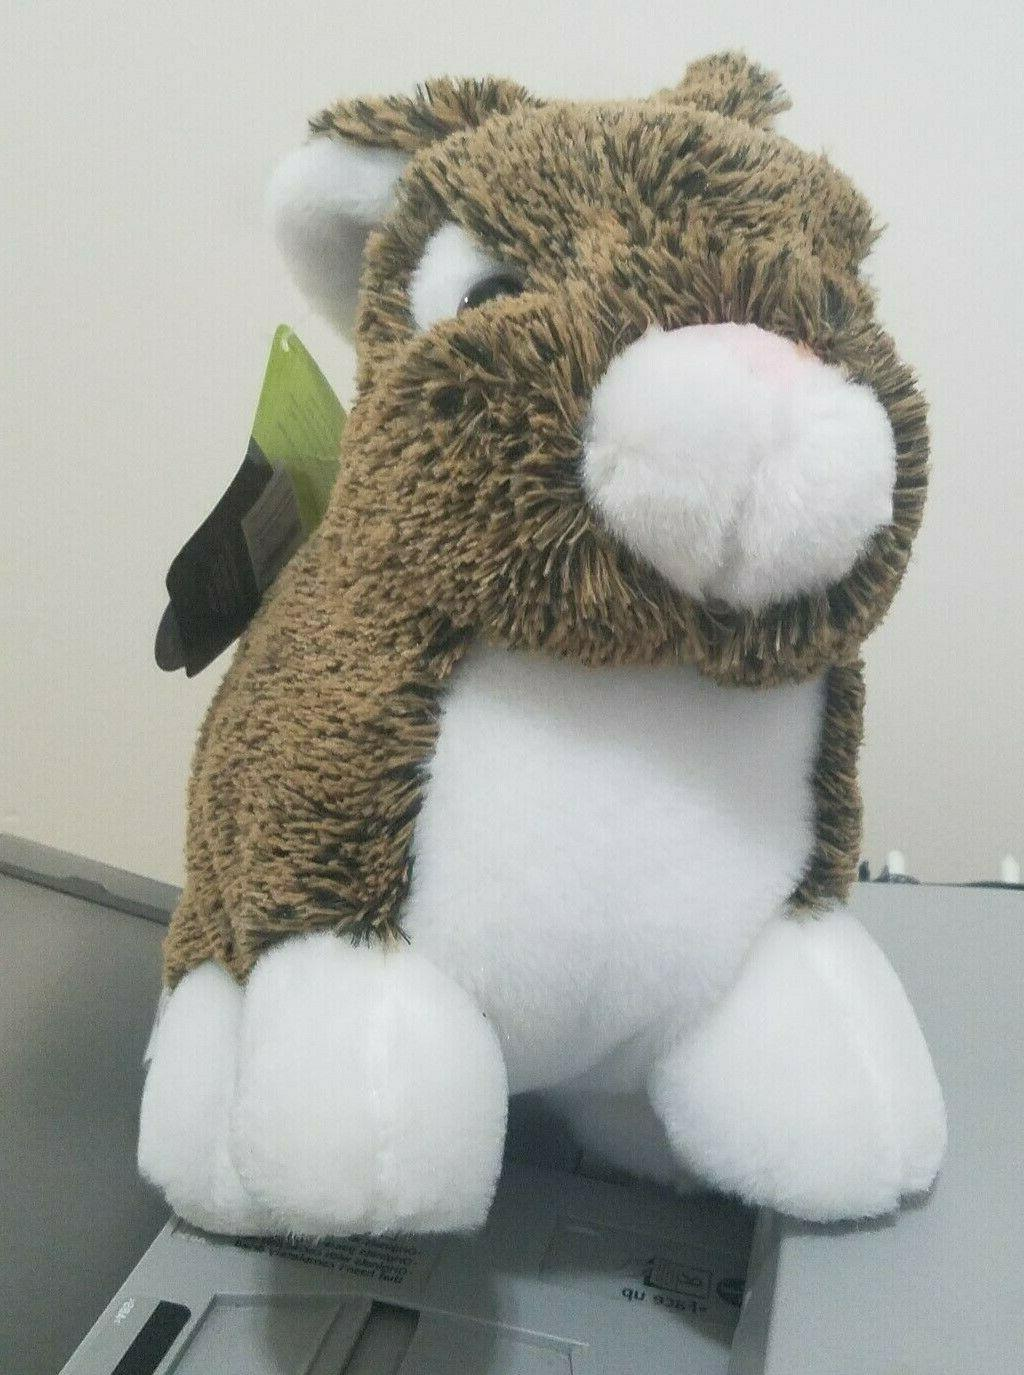 Animal Adventure Rabbit Toy Easter 2018